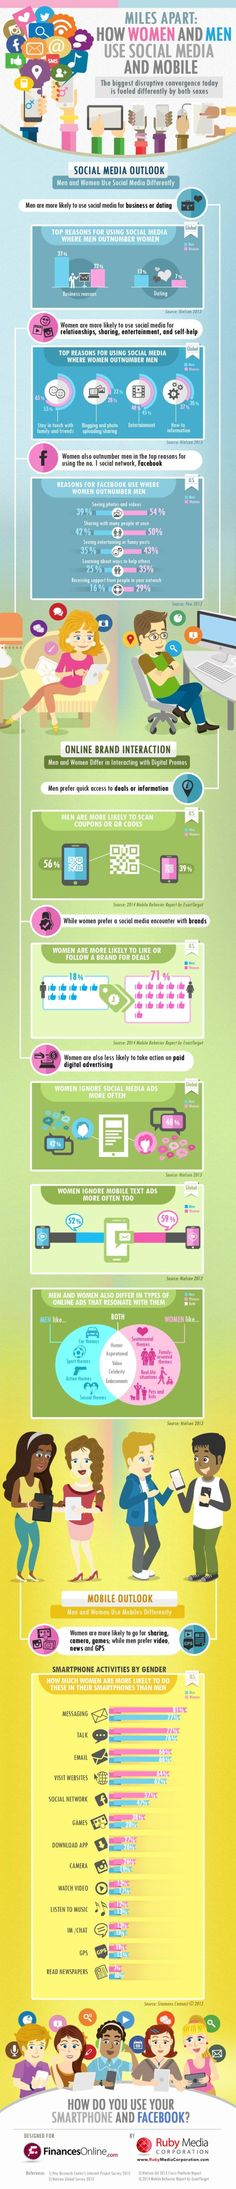 Have a look at this cool infographic from Finances Online pitting men against women in the name of digital consumption truth.